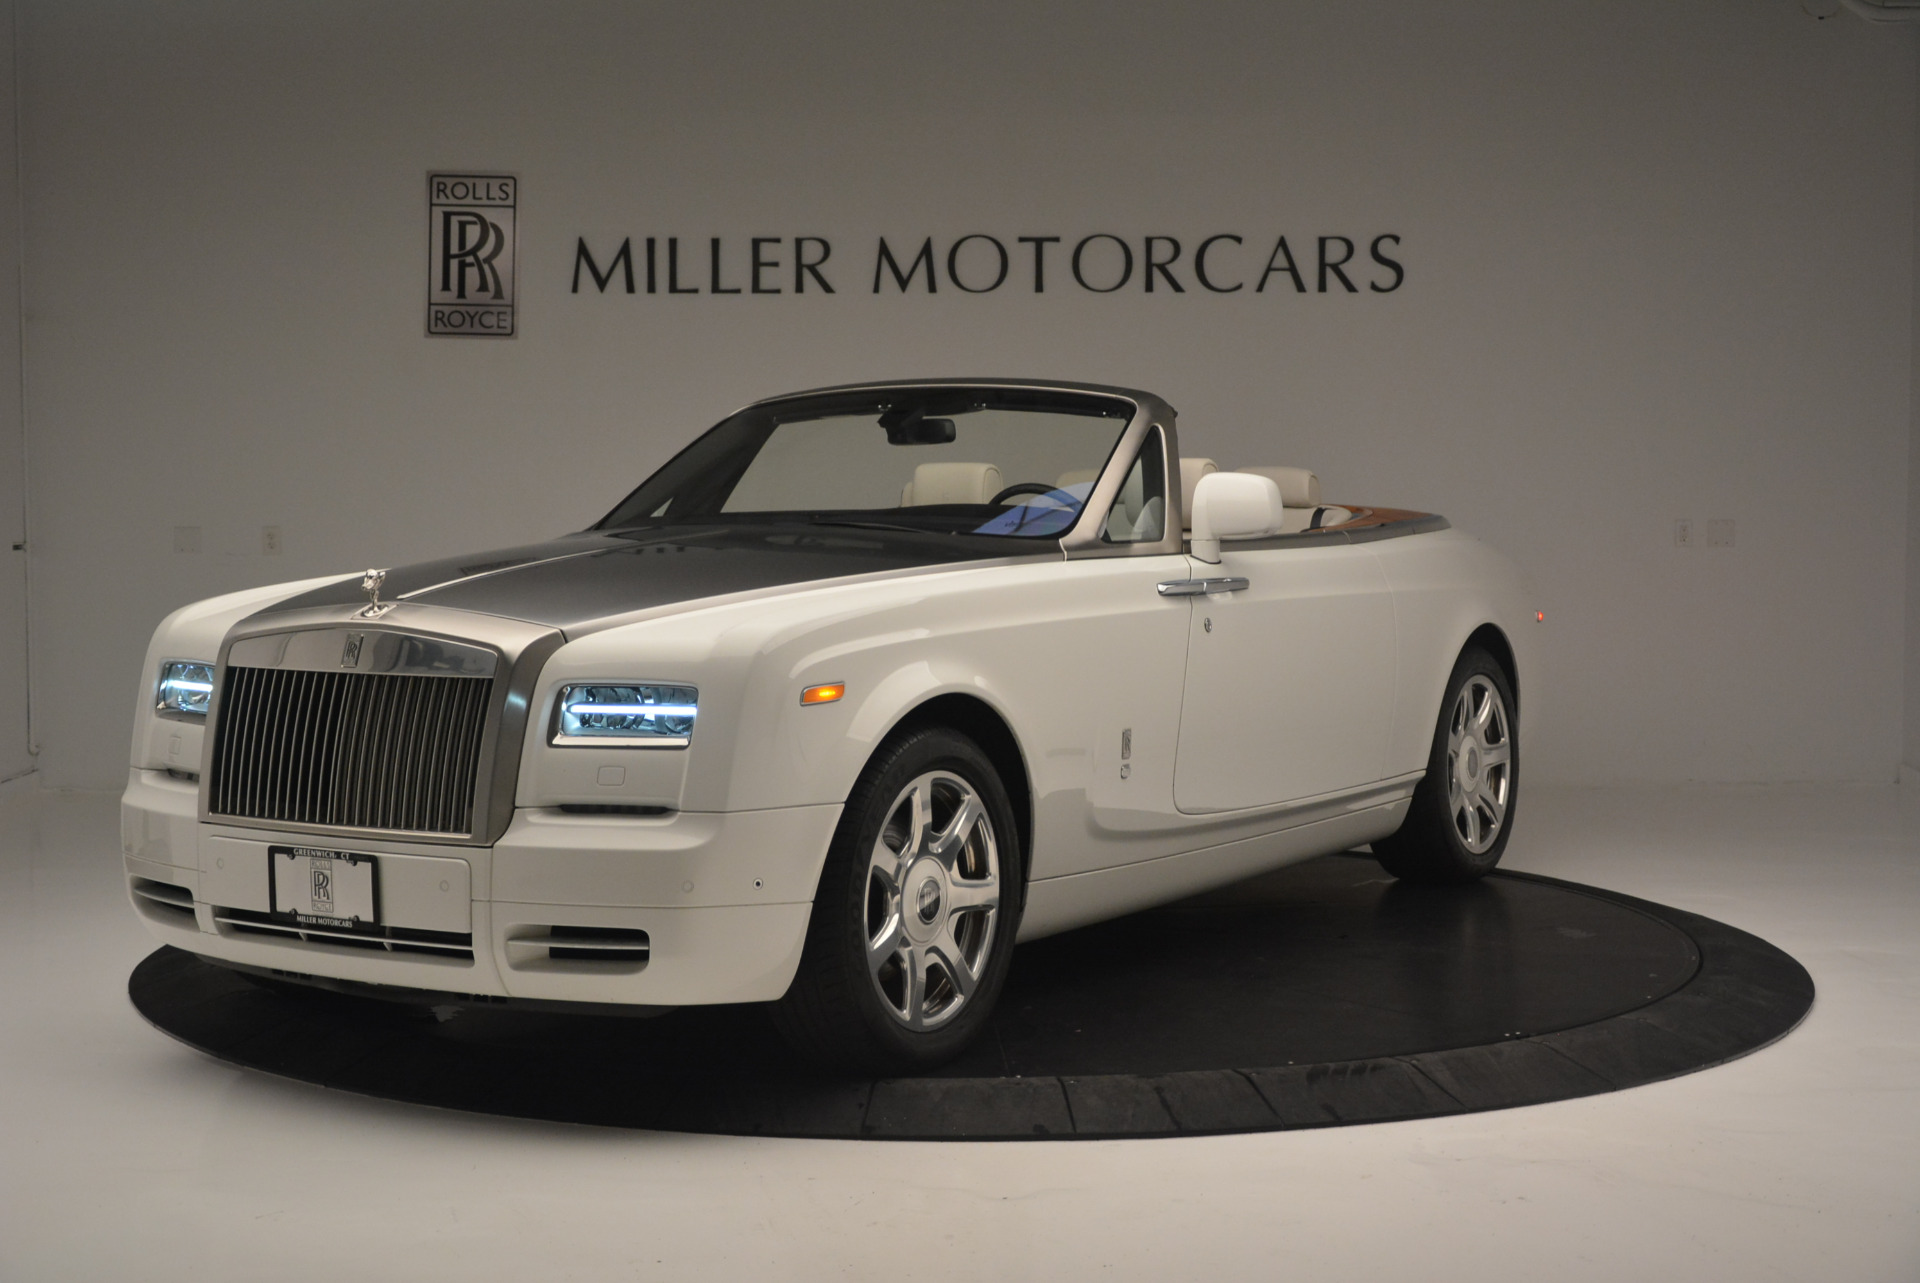 Used 2013 Rolls-Royce Phantom Drophead Coupe for sale Sold at McLaren Greenwich in Greenwich CT 06830 1